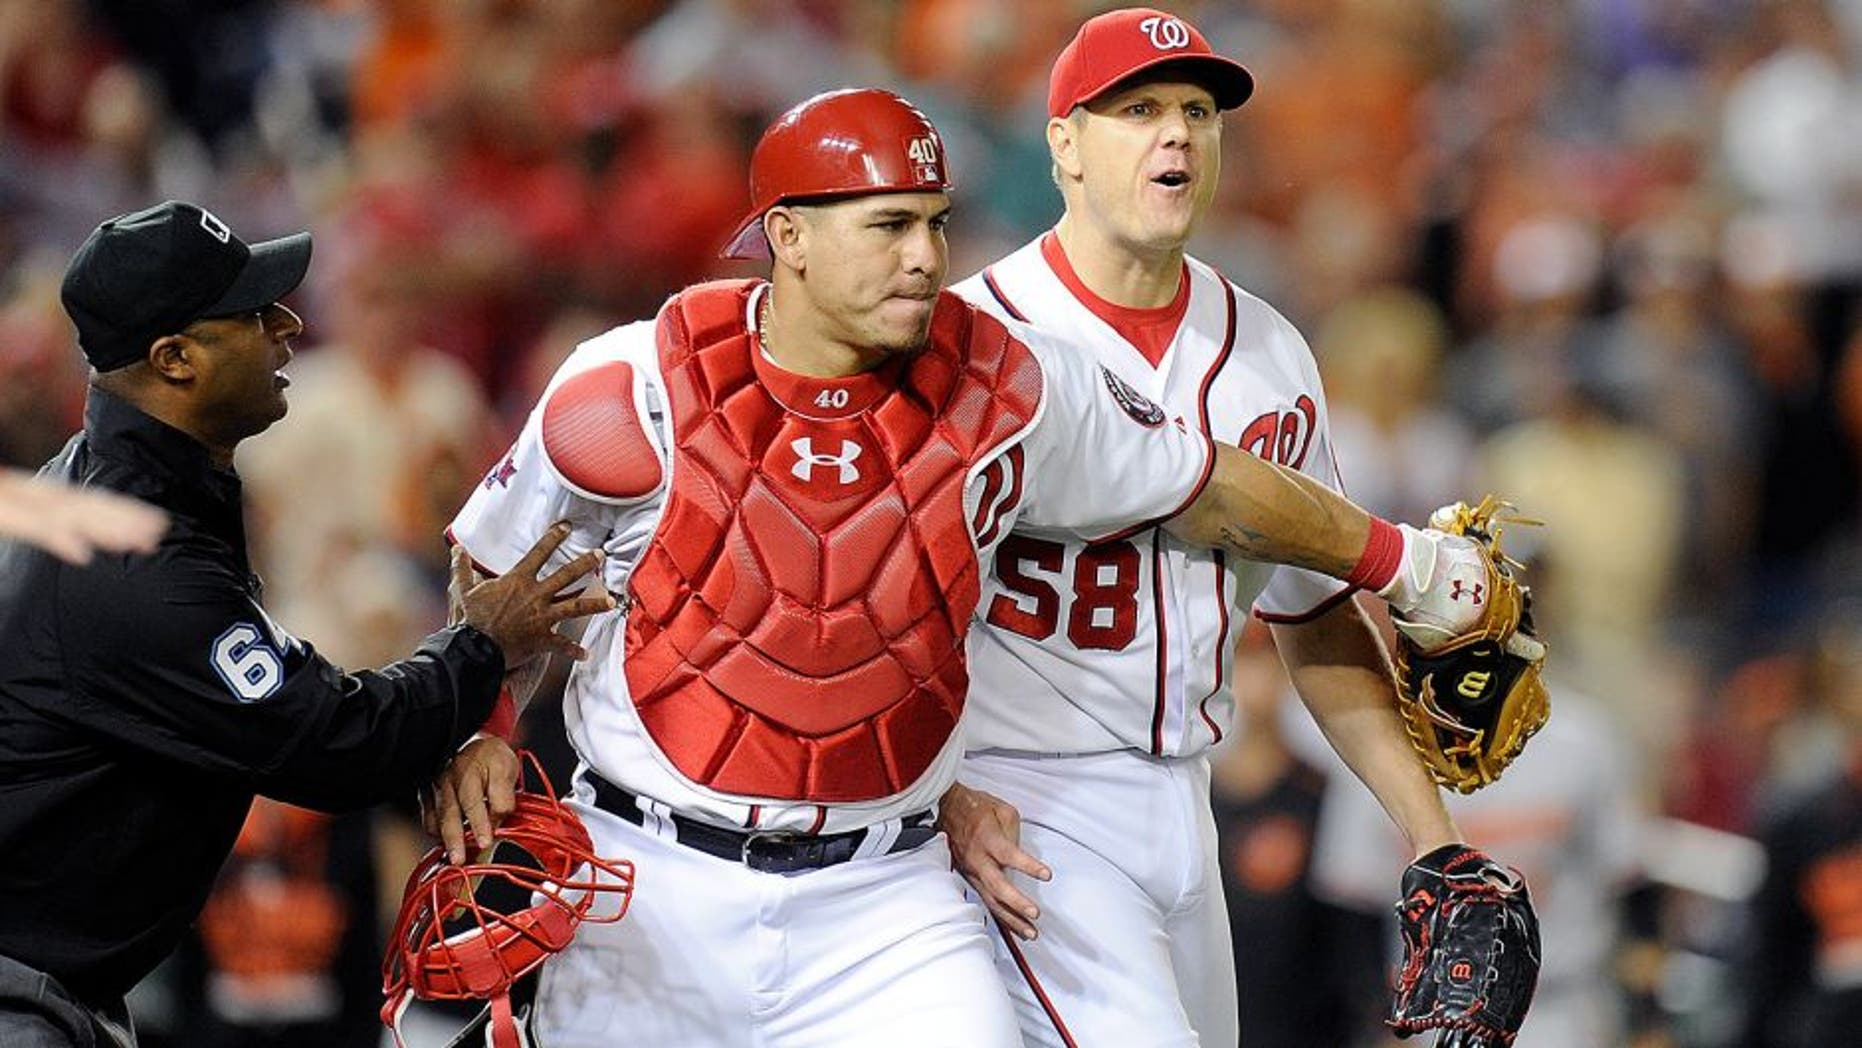 WASHINGTON, DC - SEPTEMBER 23: Jonathan Papelbon #58 of the Washington Nationals is restrained by Wilson Ramos #40 after being thrown out of the game in the ninth inning against the Baltimore Orioles at Nationals Park on September 23, 2015 in Washington, DC. (Photo by Greg Fiume/Getty Images)